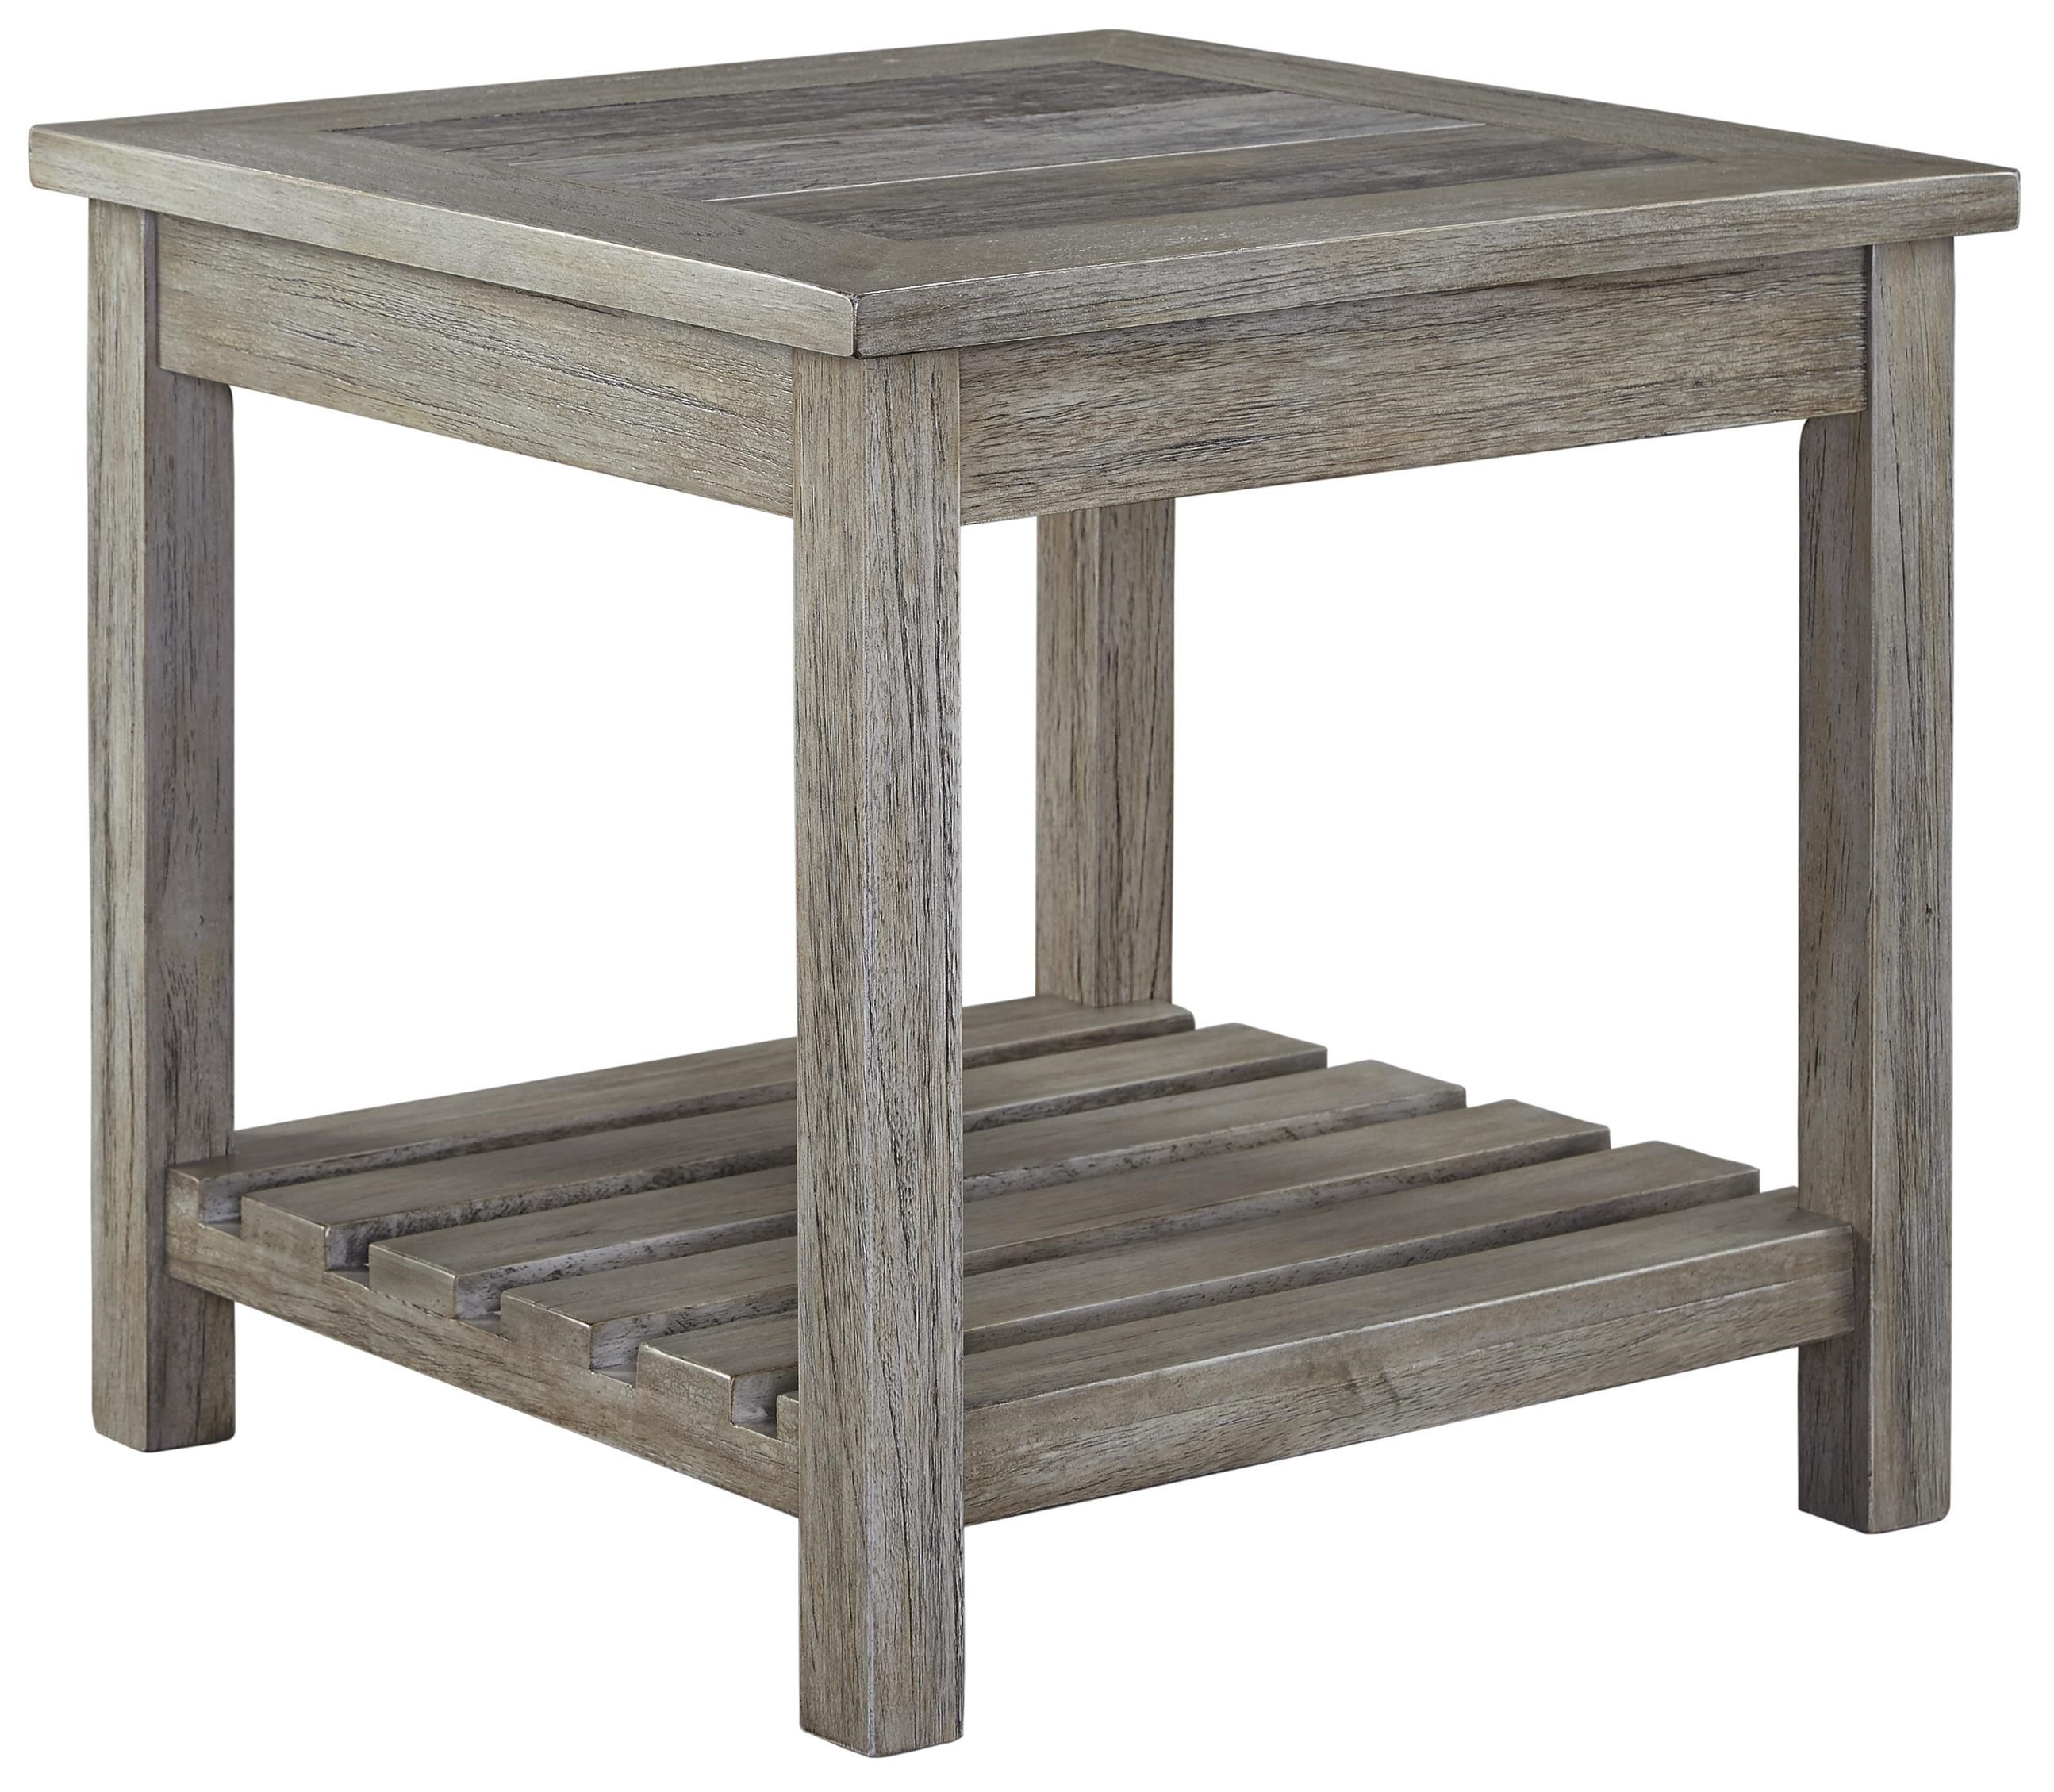 Good Signature Design By Ashley Veldar Square End Table With Ceramic Tile Top  And Slat Shelf